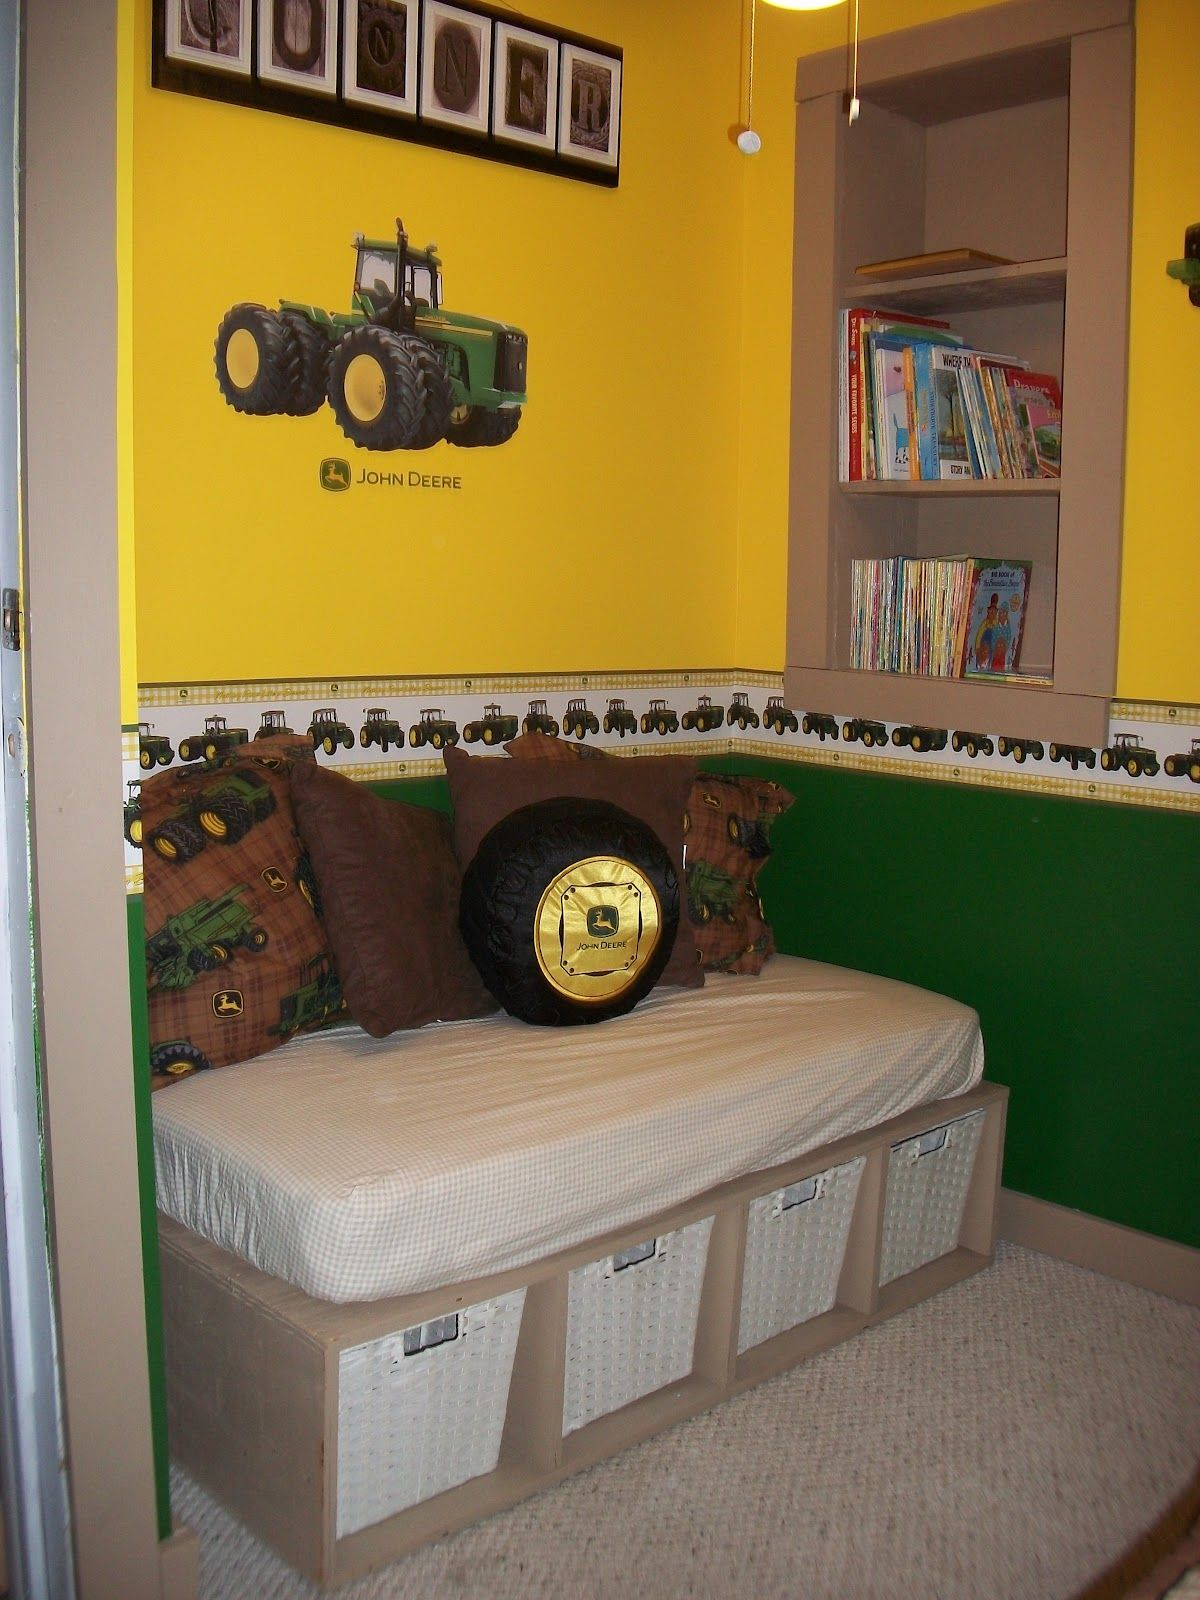 I Like That John Deere Tractor Tire Pillow